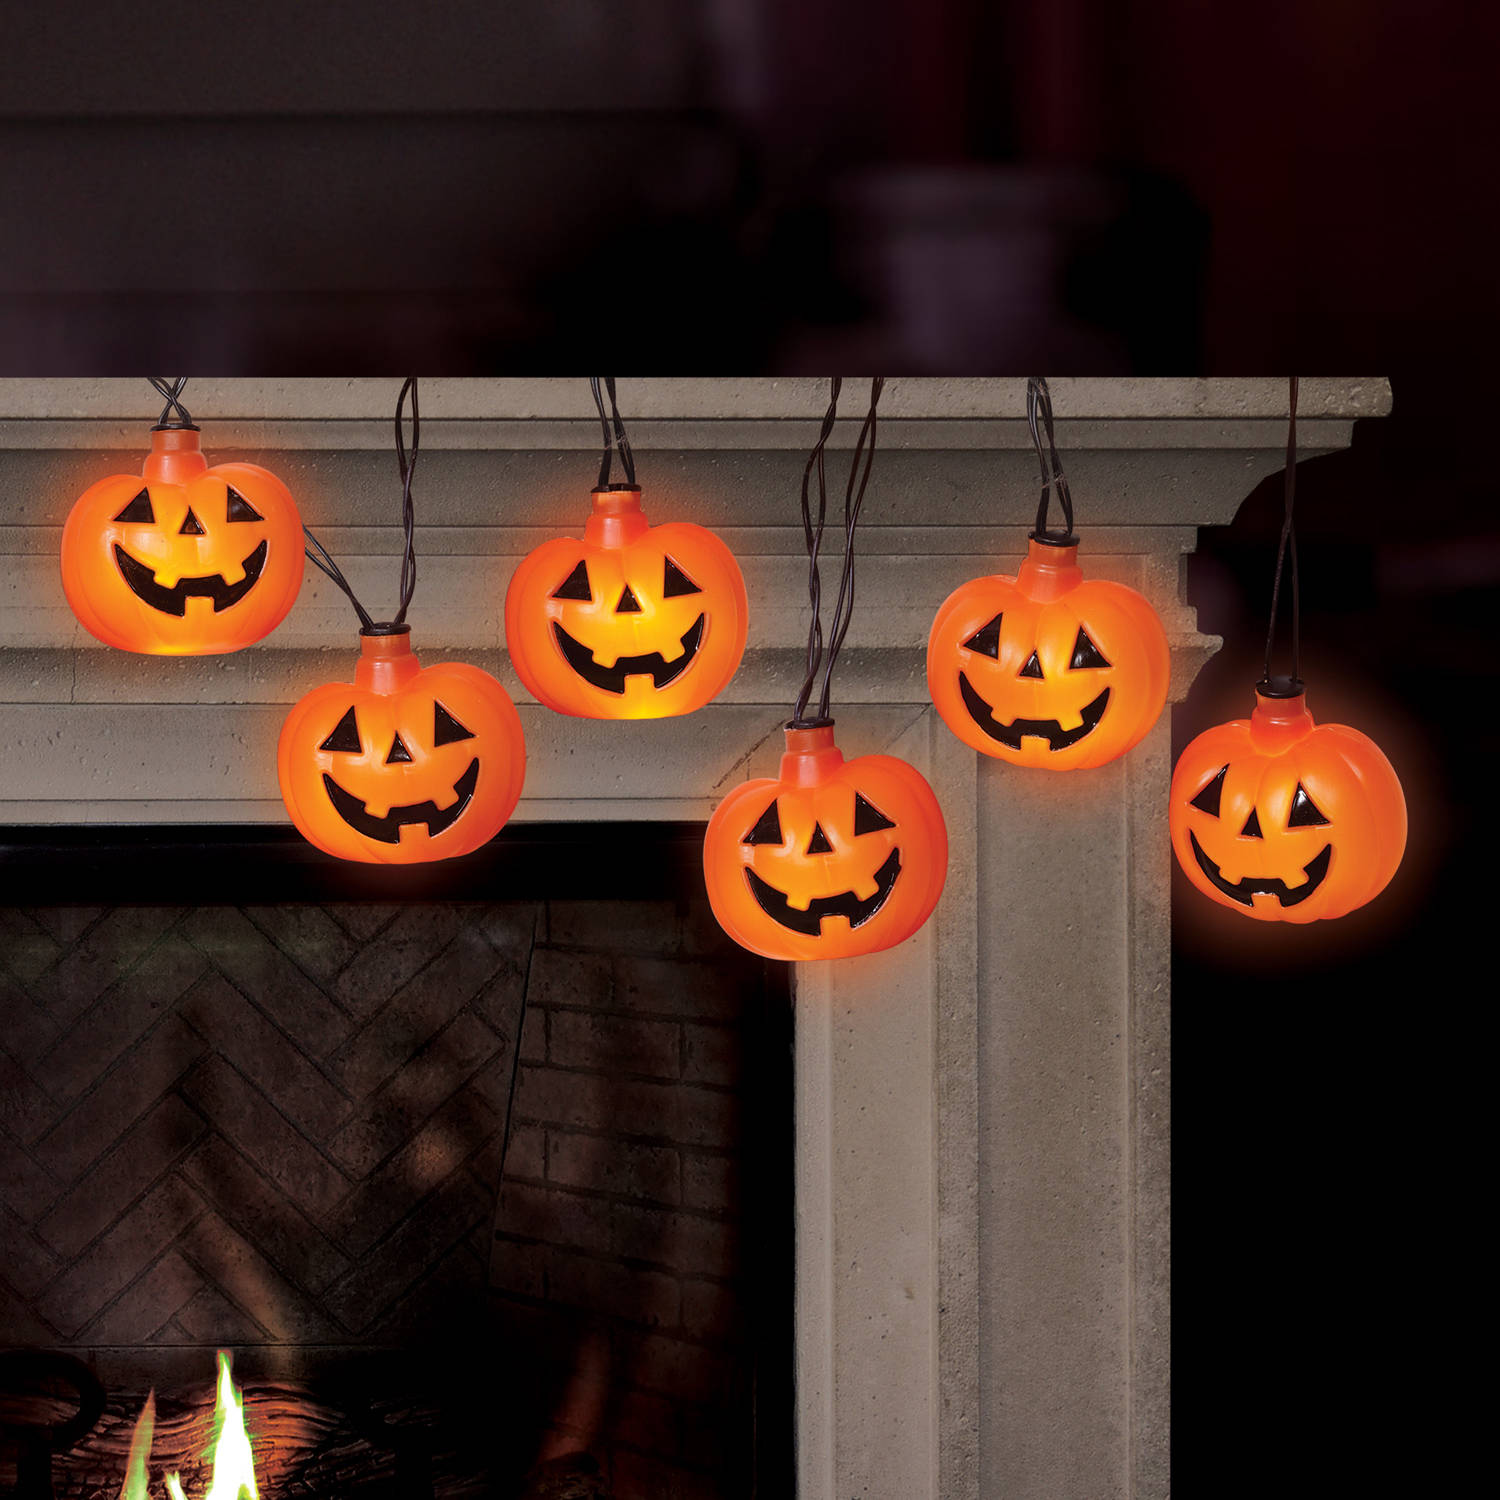 Led Halloween Lights Battery Operated Pumpkin Led Halloween Lights With Spooky Sound